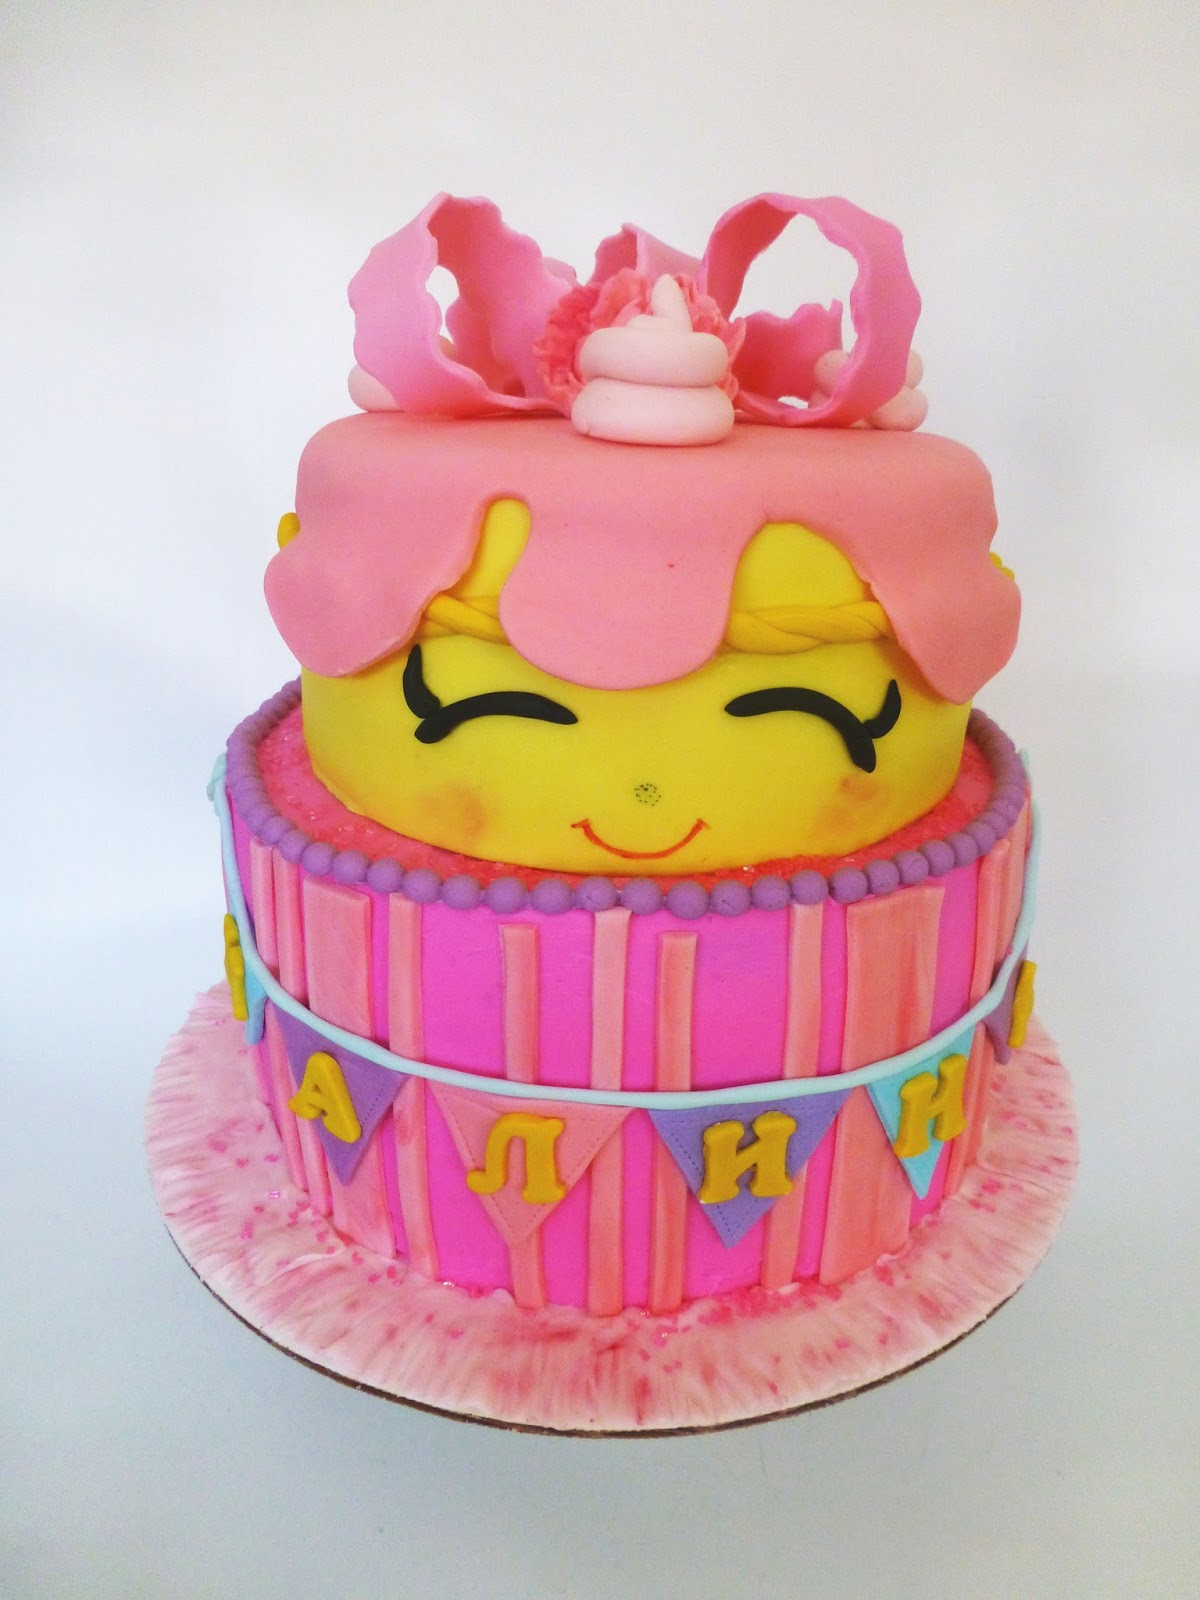 Best ideas about Shopkins Birthday Cake . Save or Pin CakeSophia Shopkins cake Now.